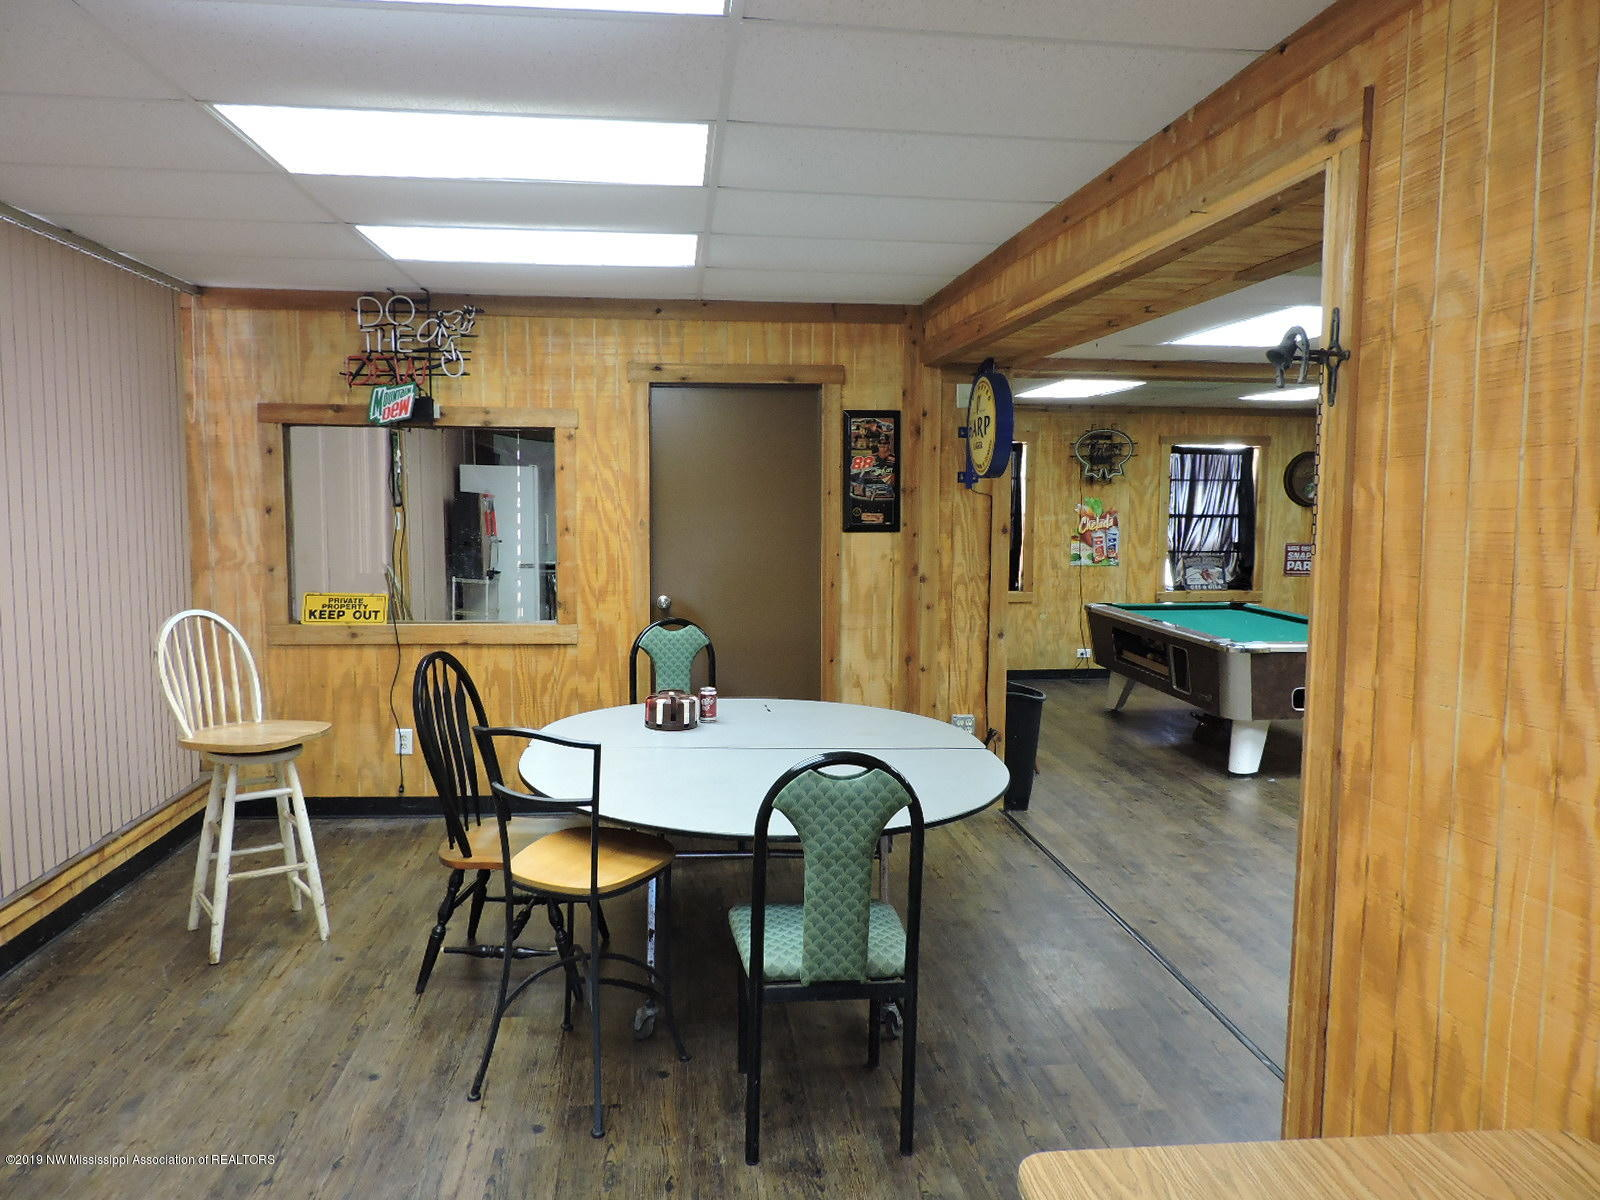 8600-8602 Highway 178, Marshall, Mississippi 38611, ,Commercial,For Sale,Highway 178,325381